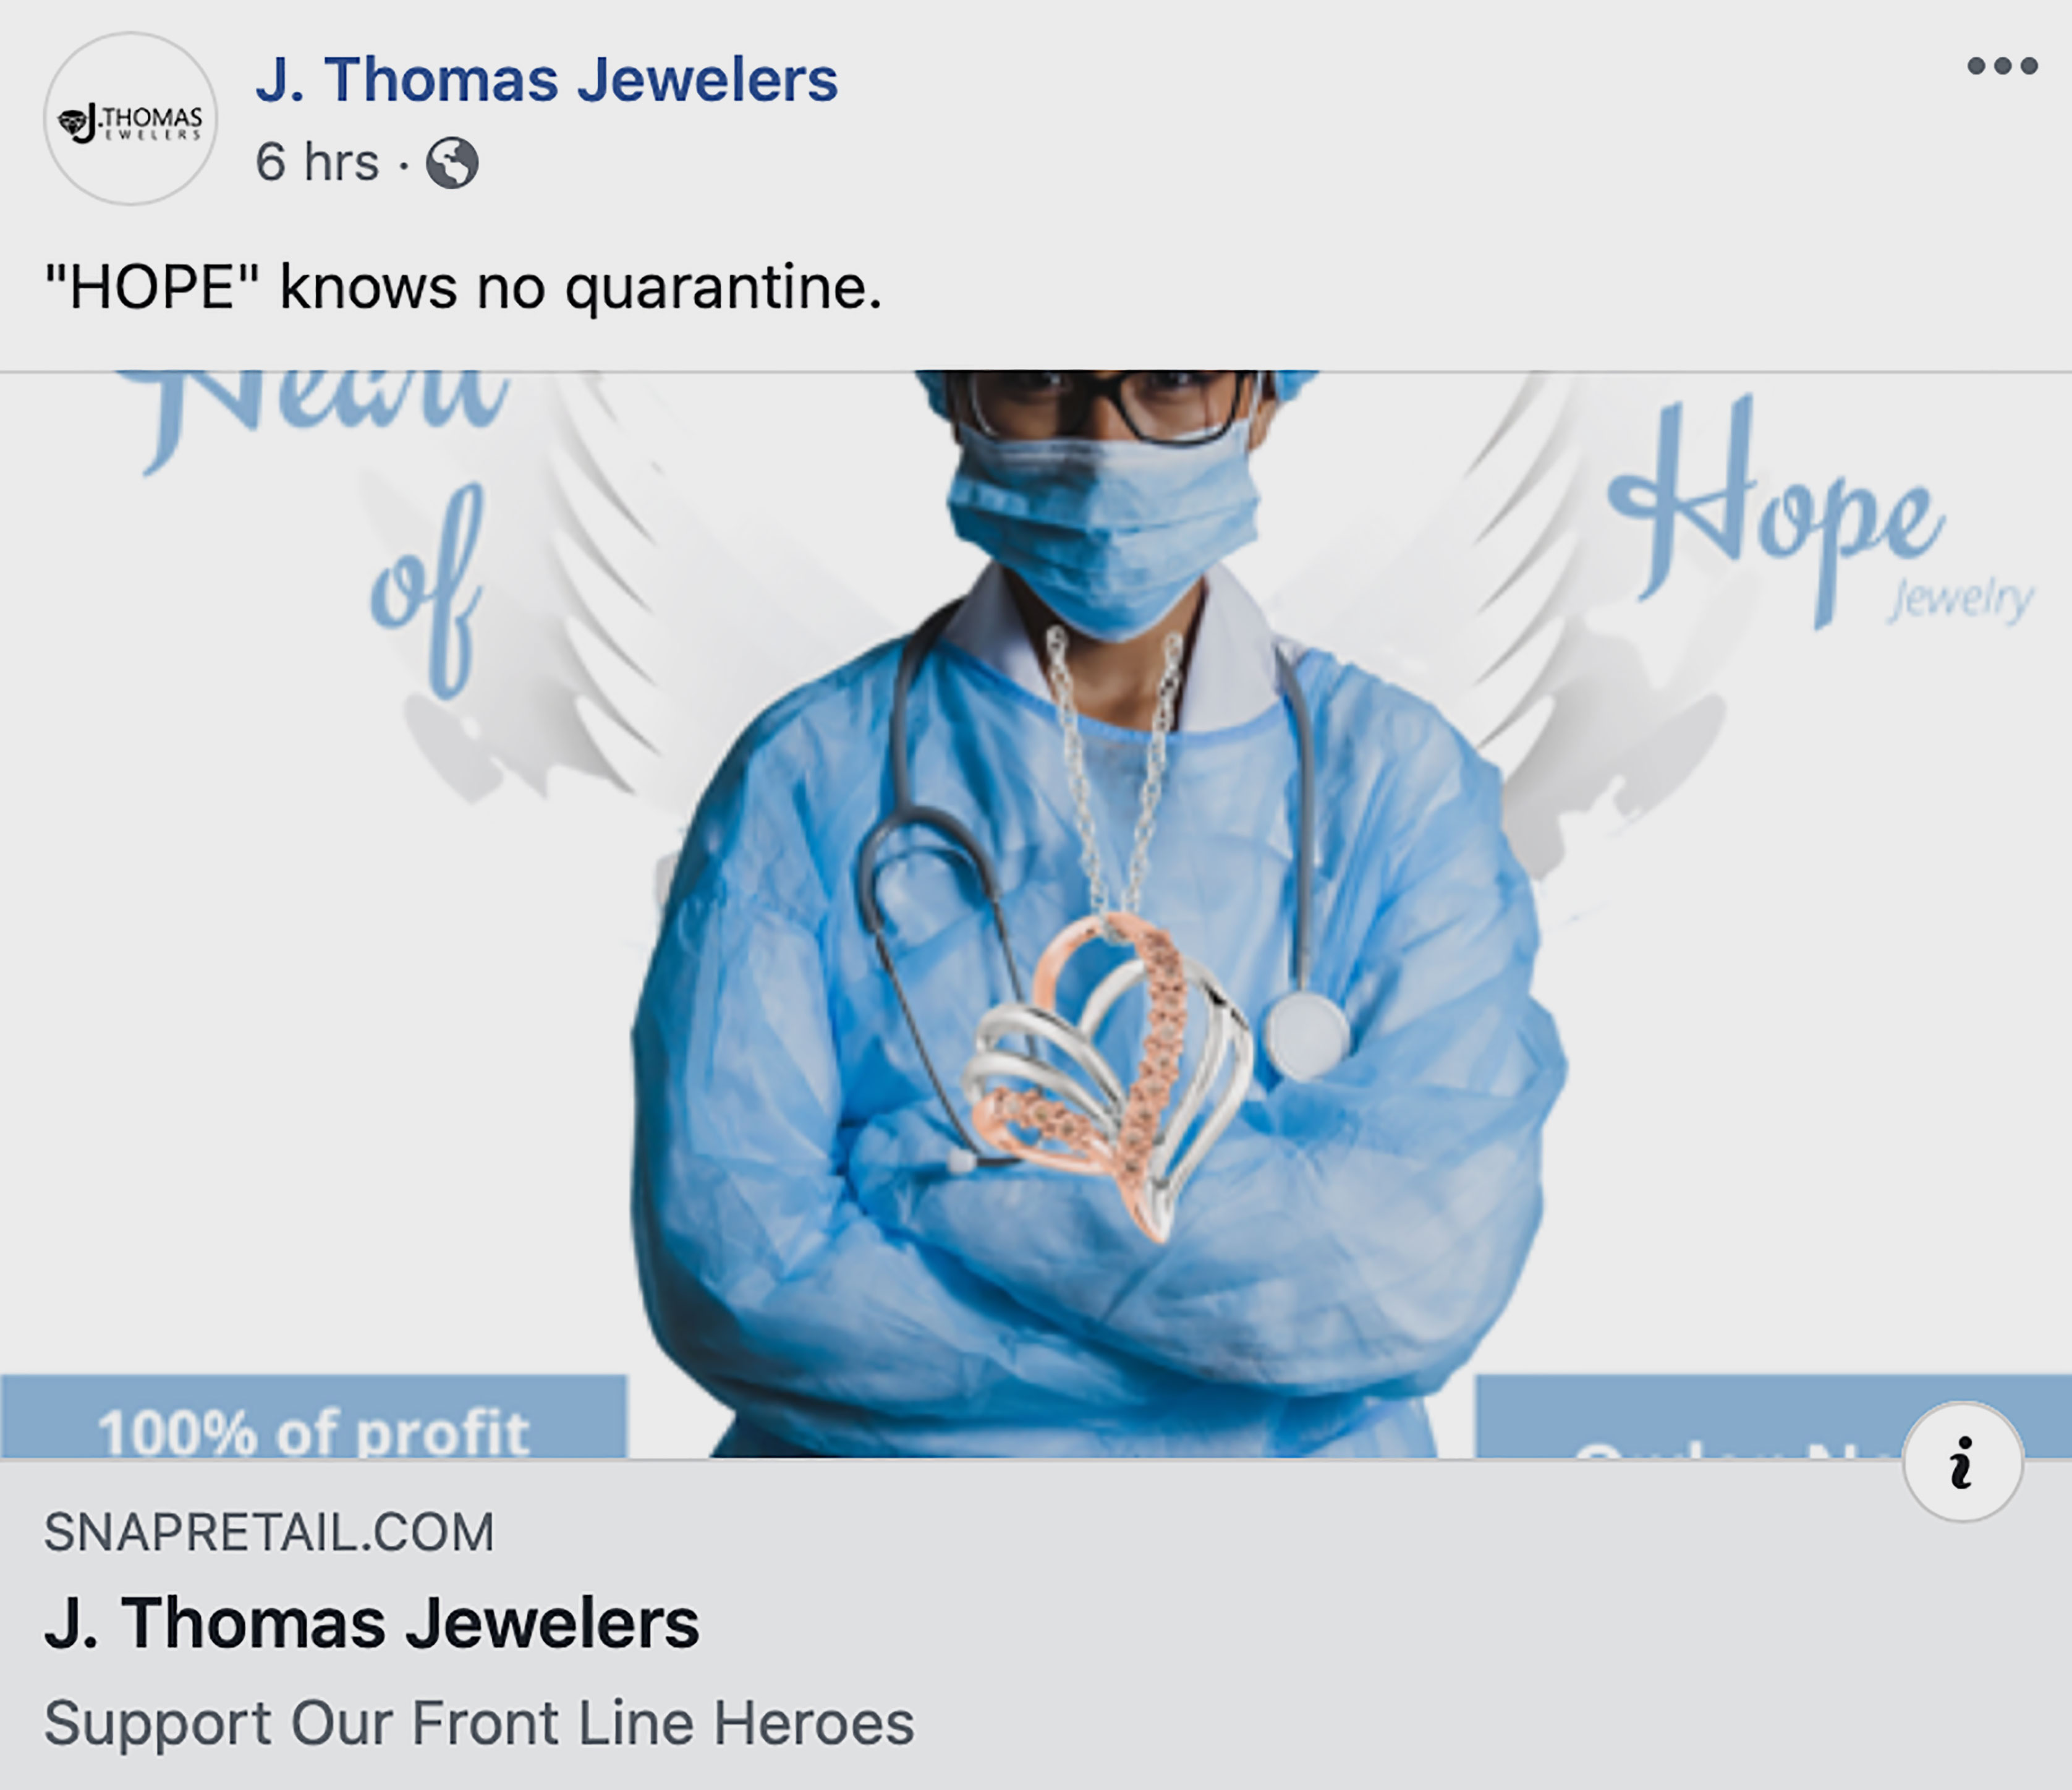 J. Thomas Jewelers heart of hope pendant